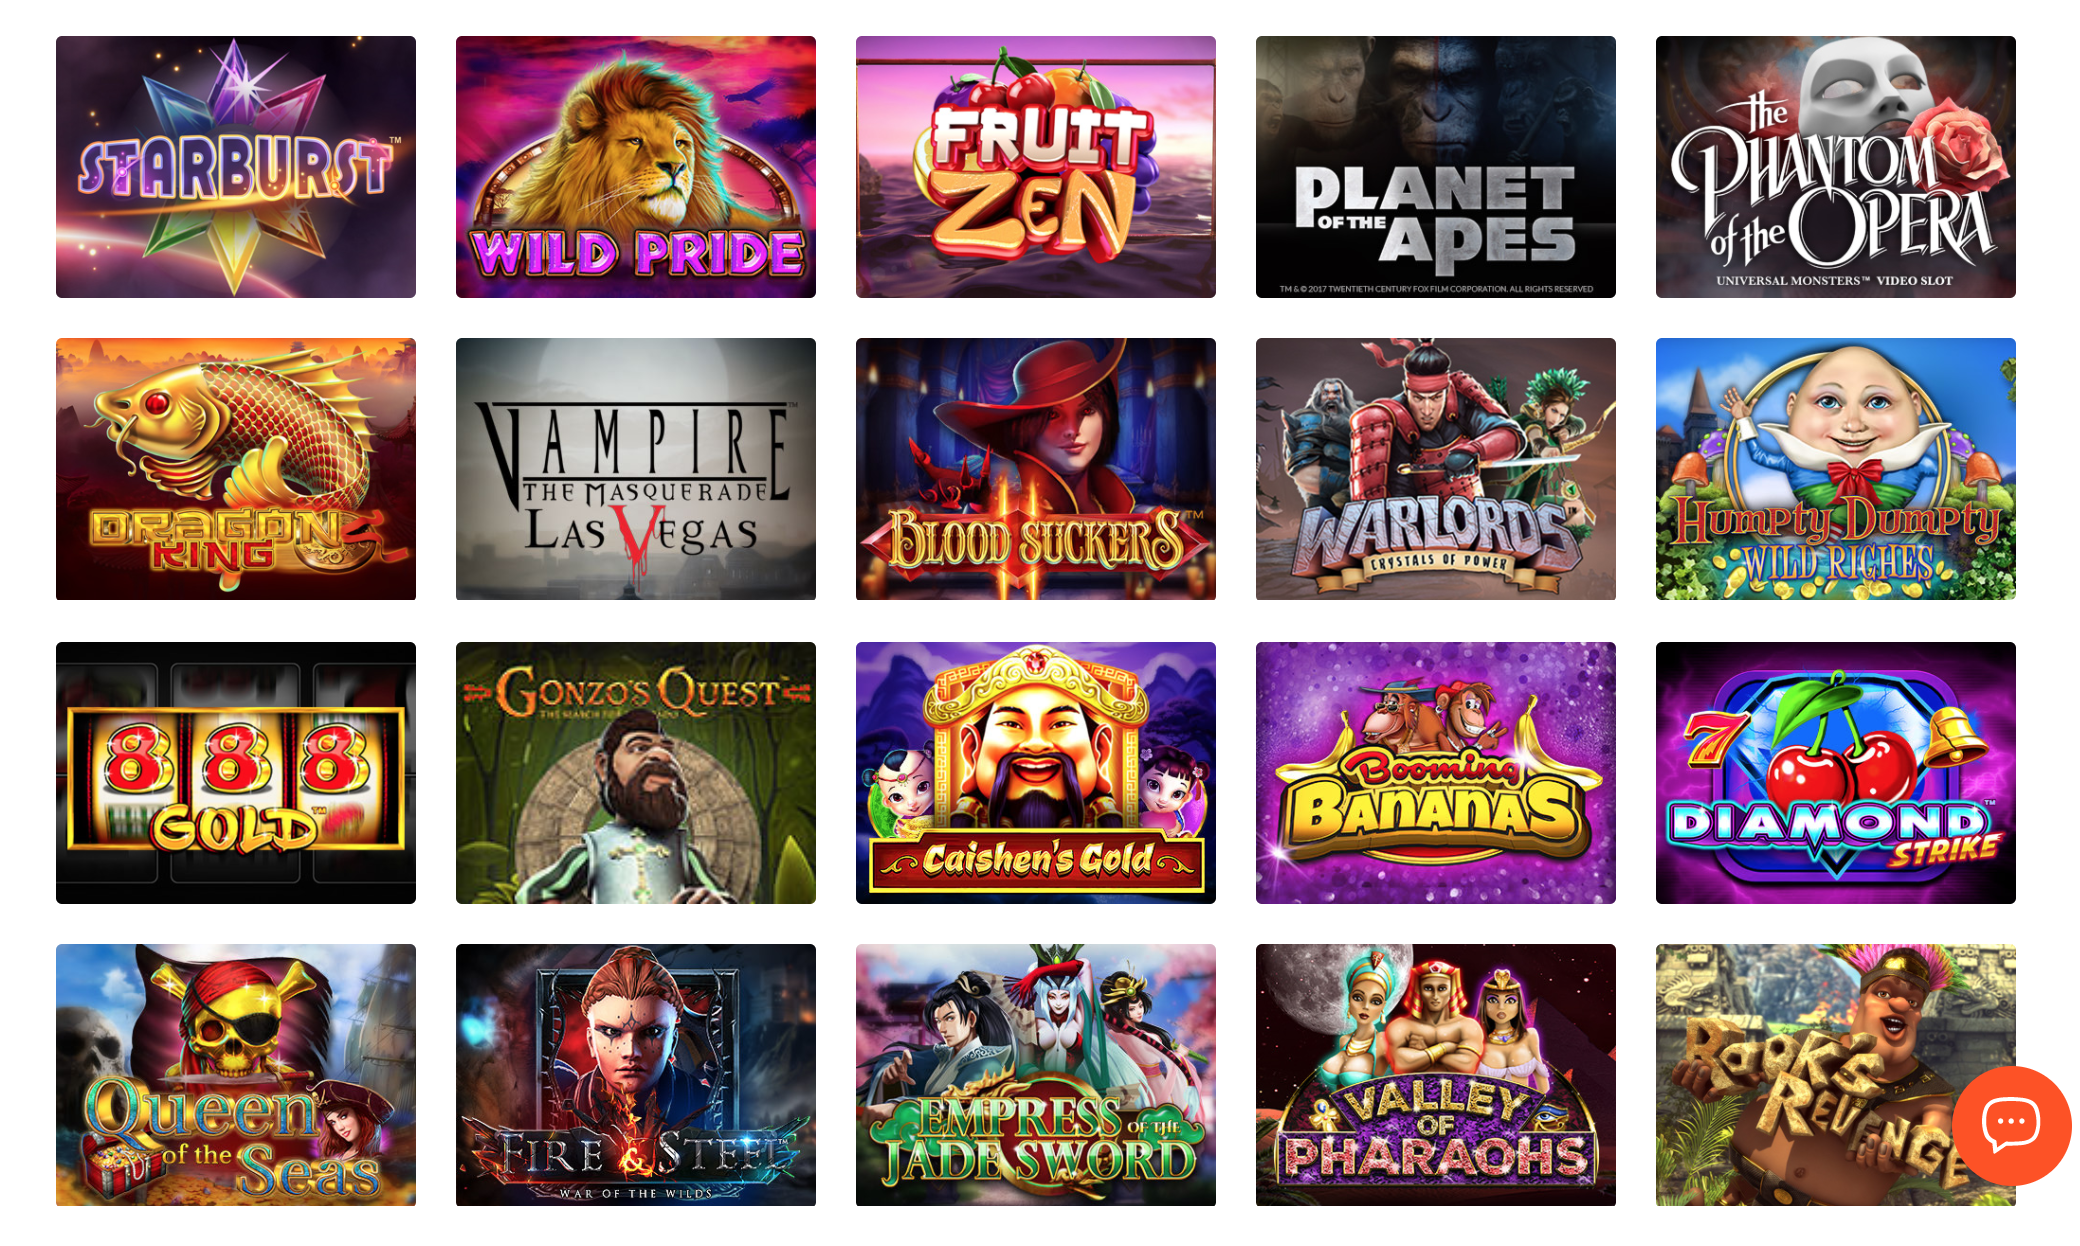 Slot games at BitCasino.io